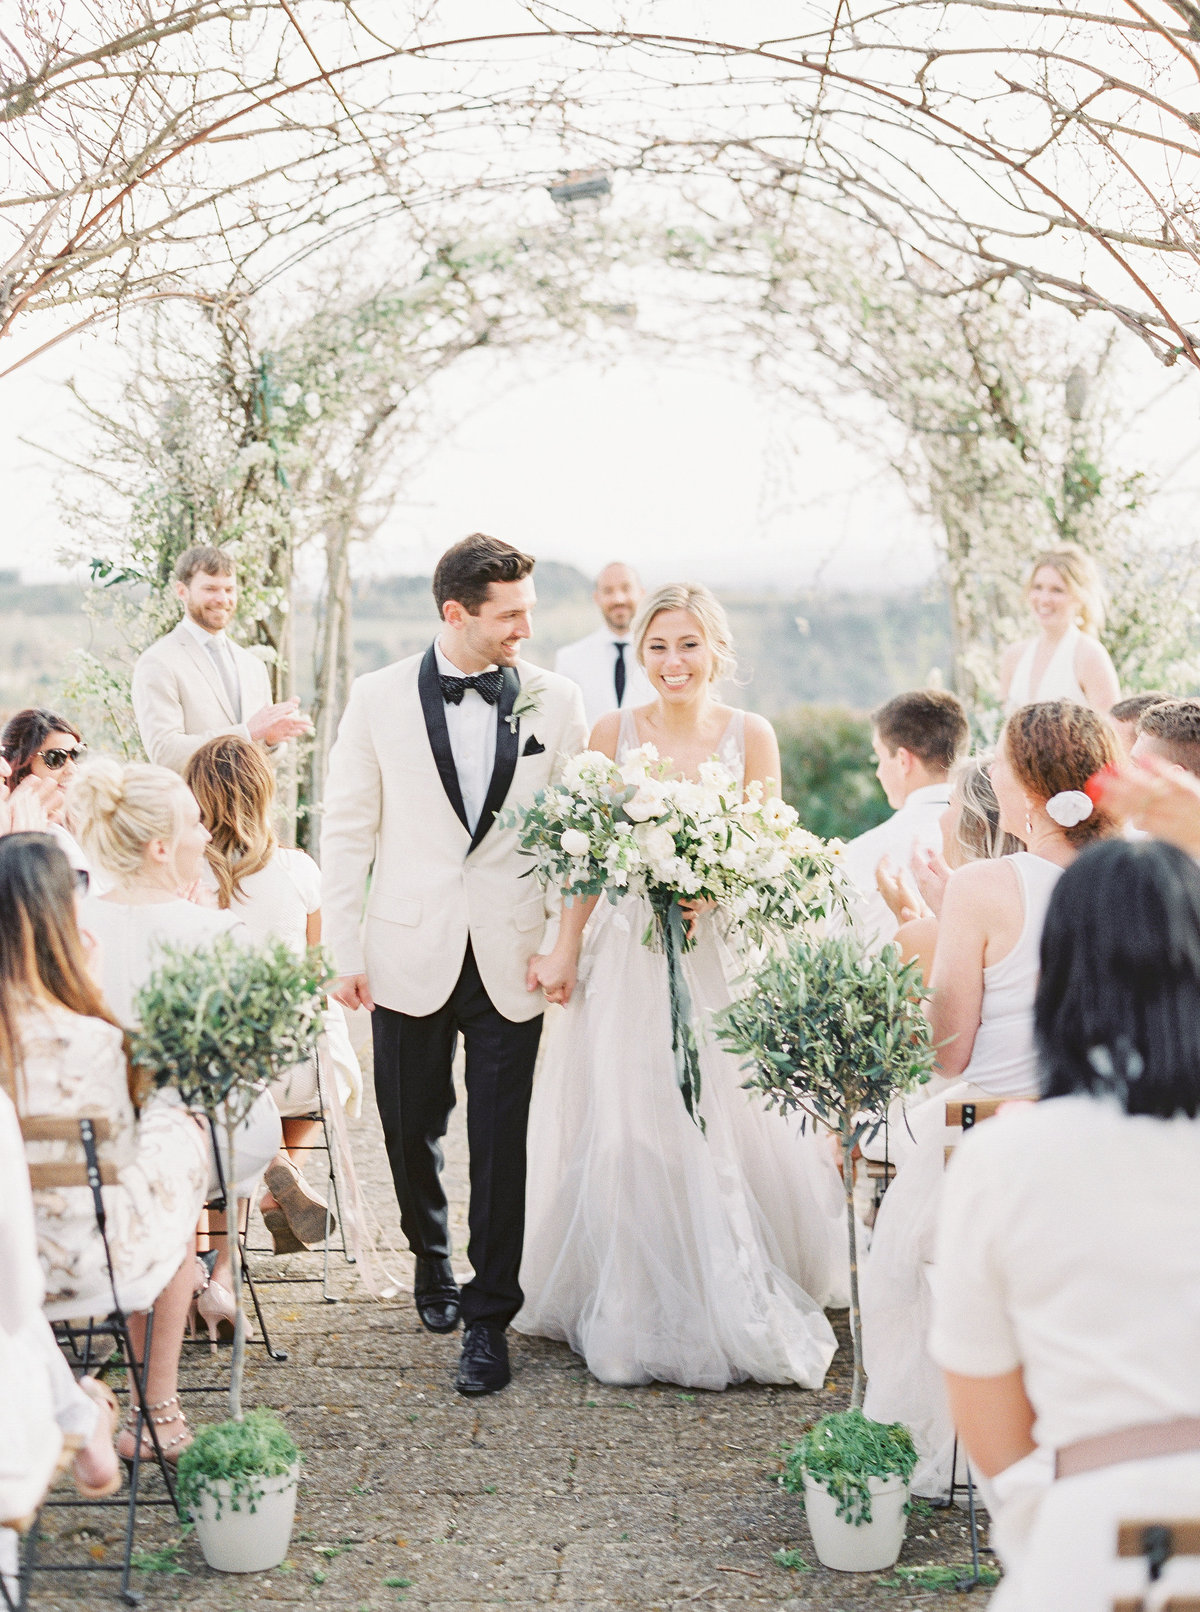 Tuscany Wedding Erica Nick - Lauren Fair Photography171